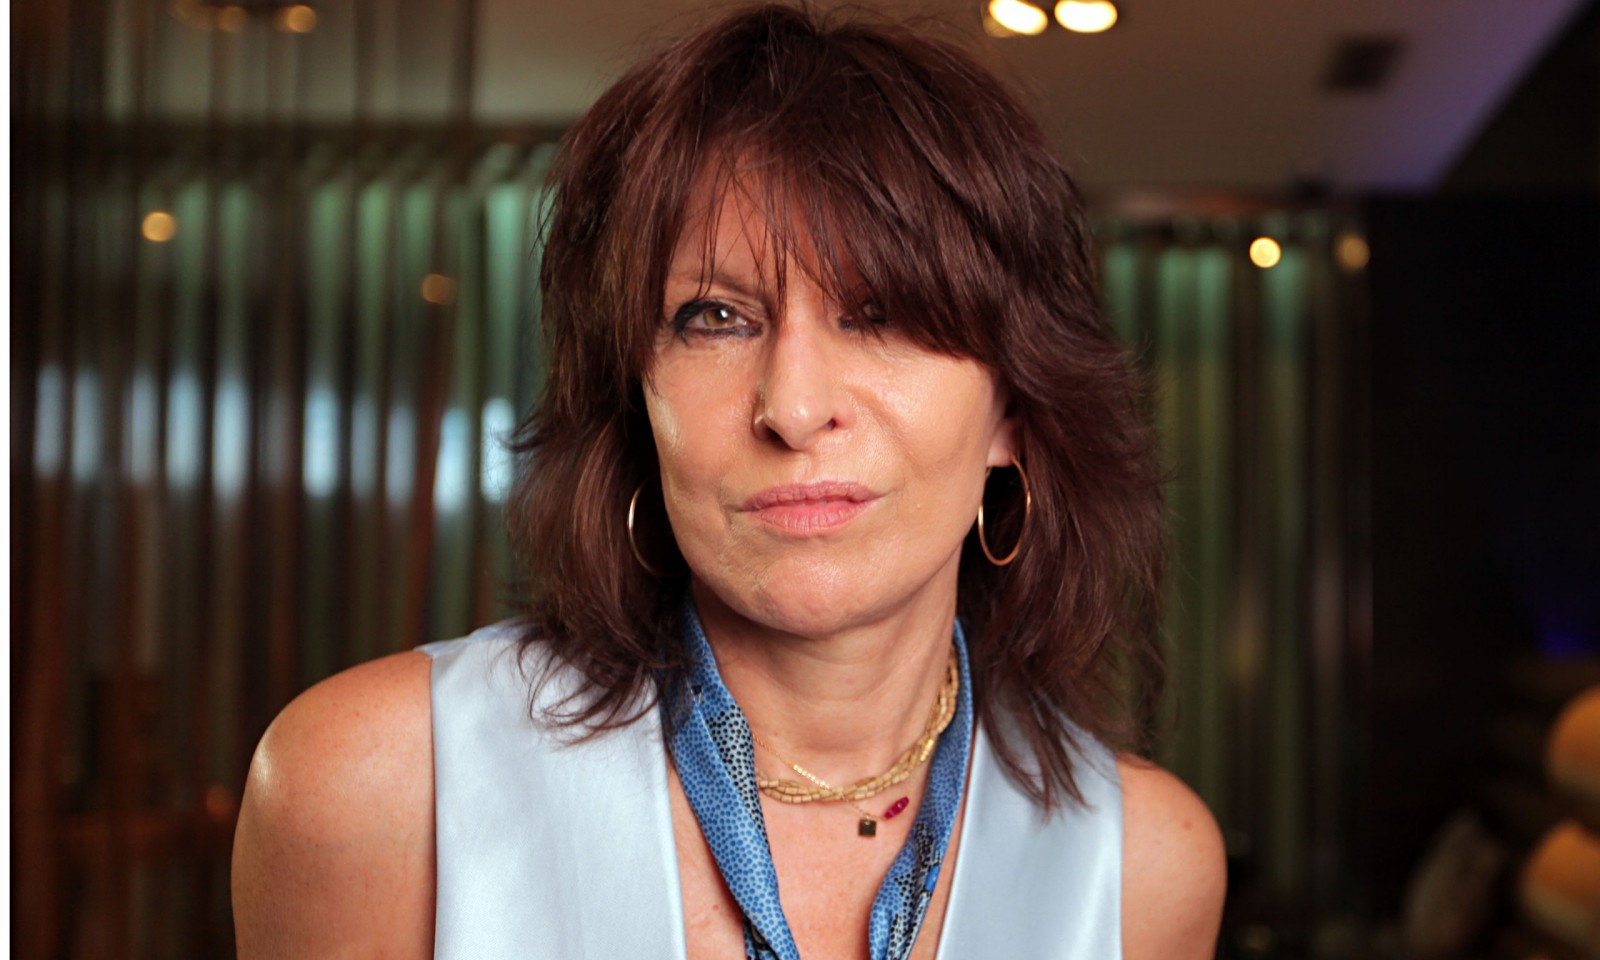 Chrissie Hynde Writing Memoirs and Planning A Reunion